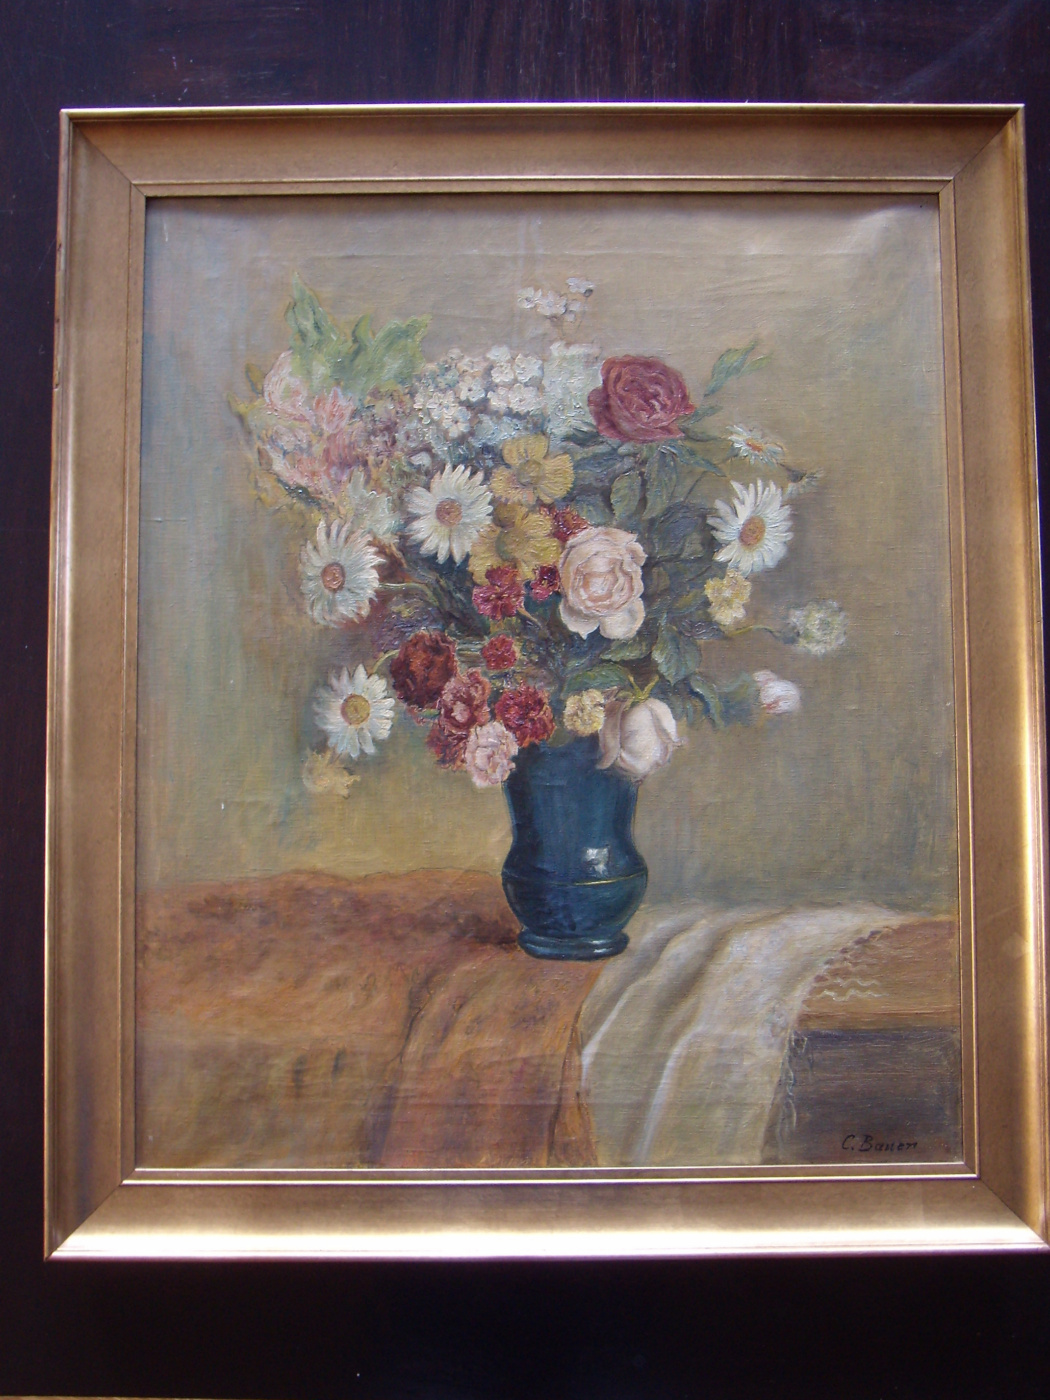 Unknown artist. Still life with flowers.